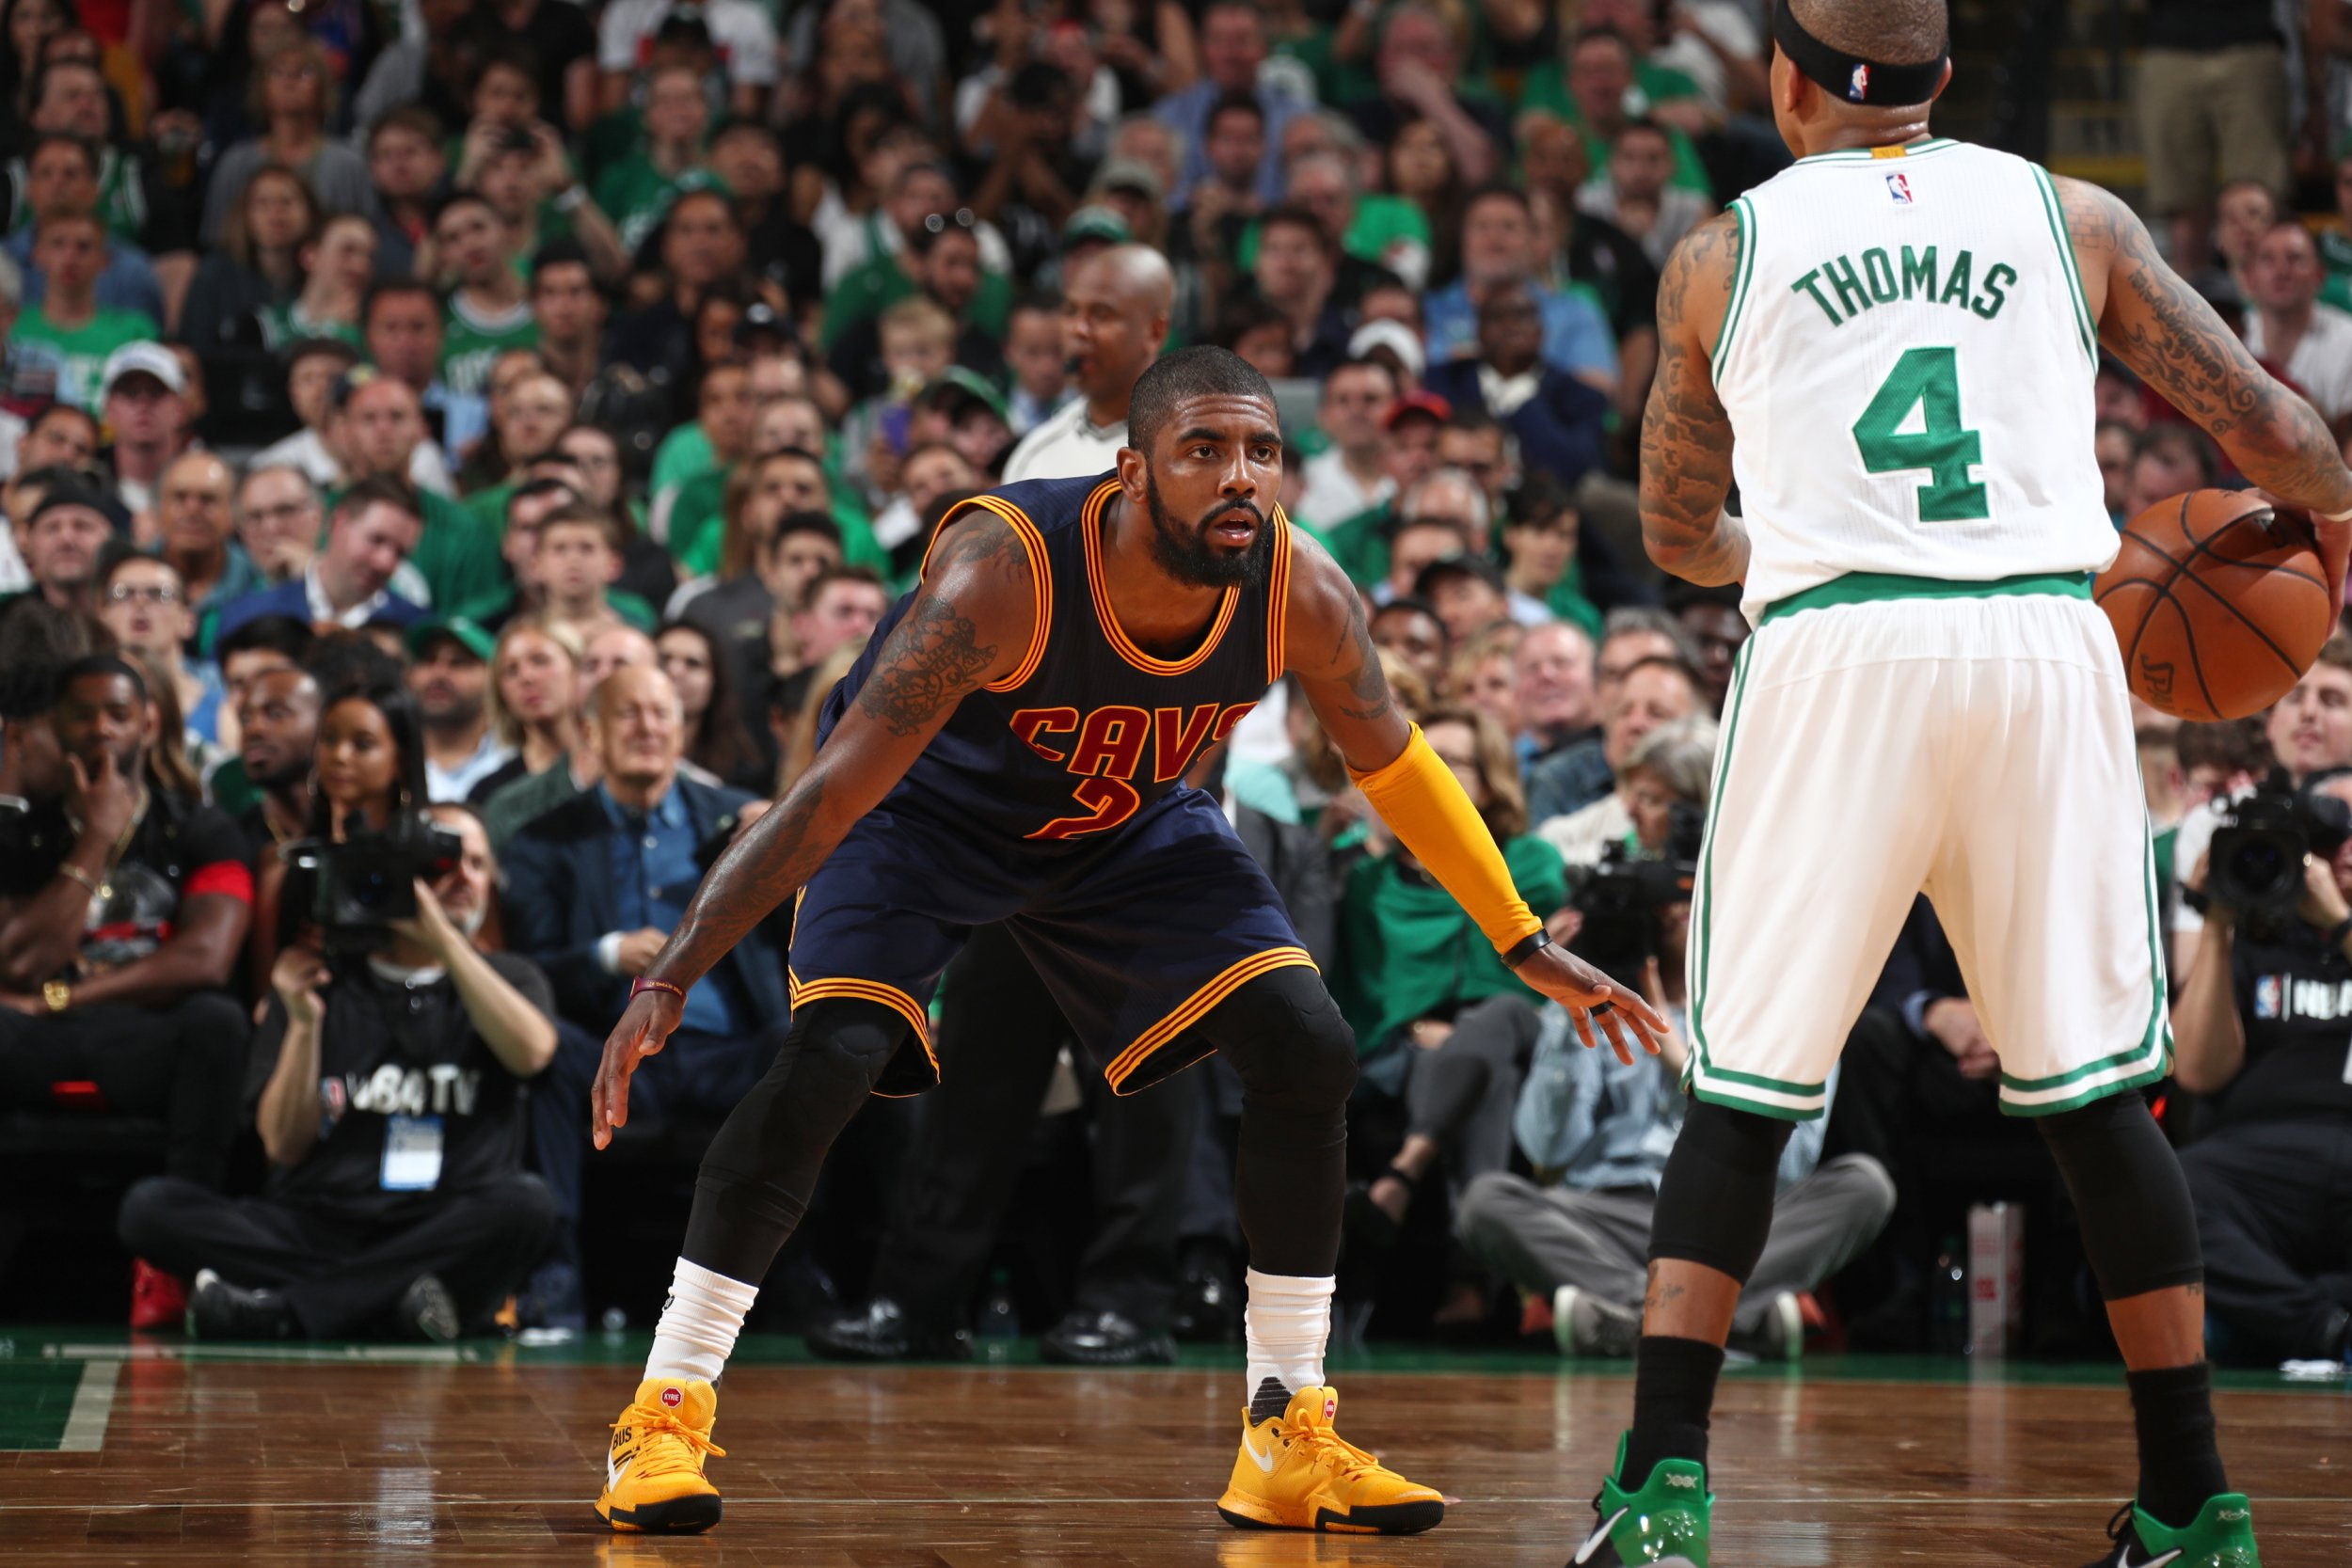 9fae019f7e82 Kyrie Irving of the Cleveland Cavaliers defends against Isaiah Thomas of  the Boston Celtics at Boston s TD Garden in on May 17. Nathaniel S.  Butler NBAE via ...